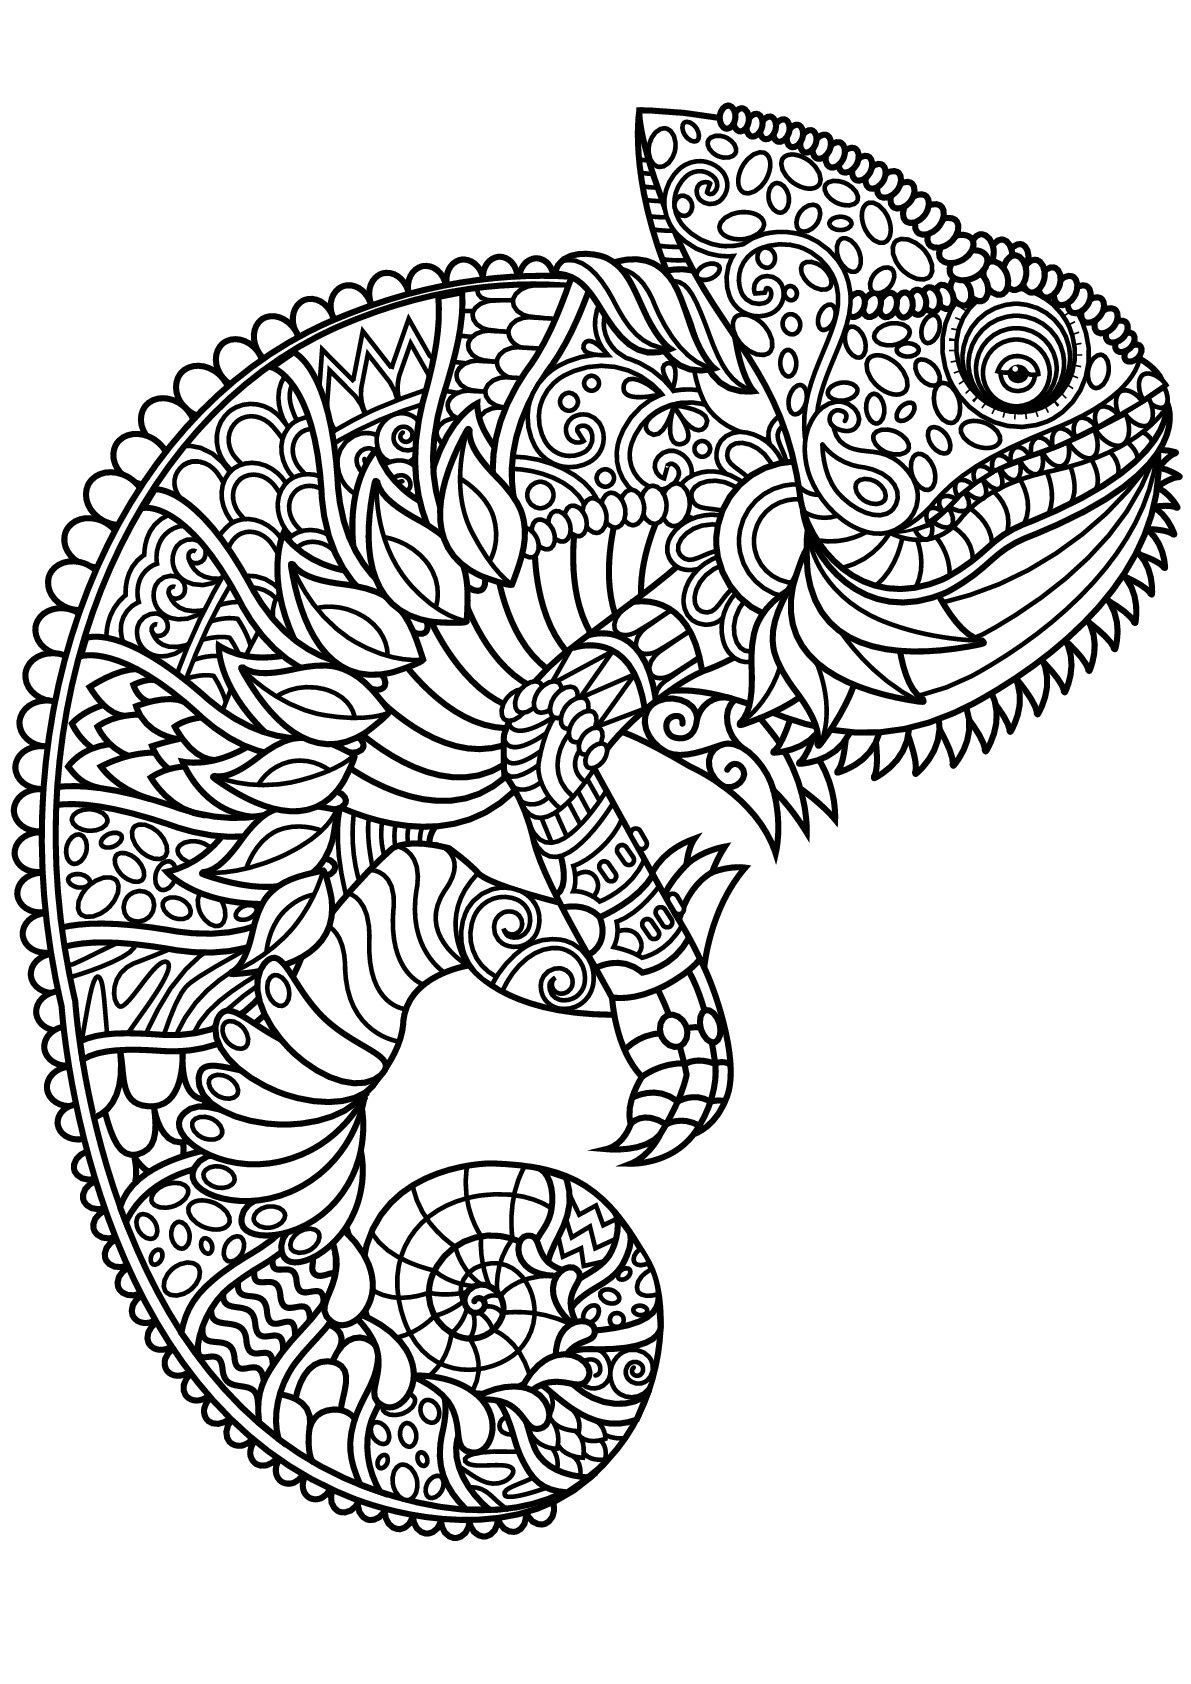 Pin On Printable Mandala Coloring Pages